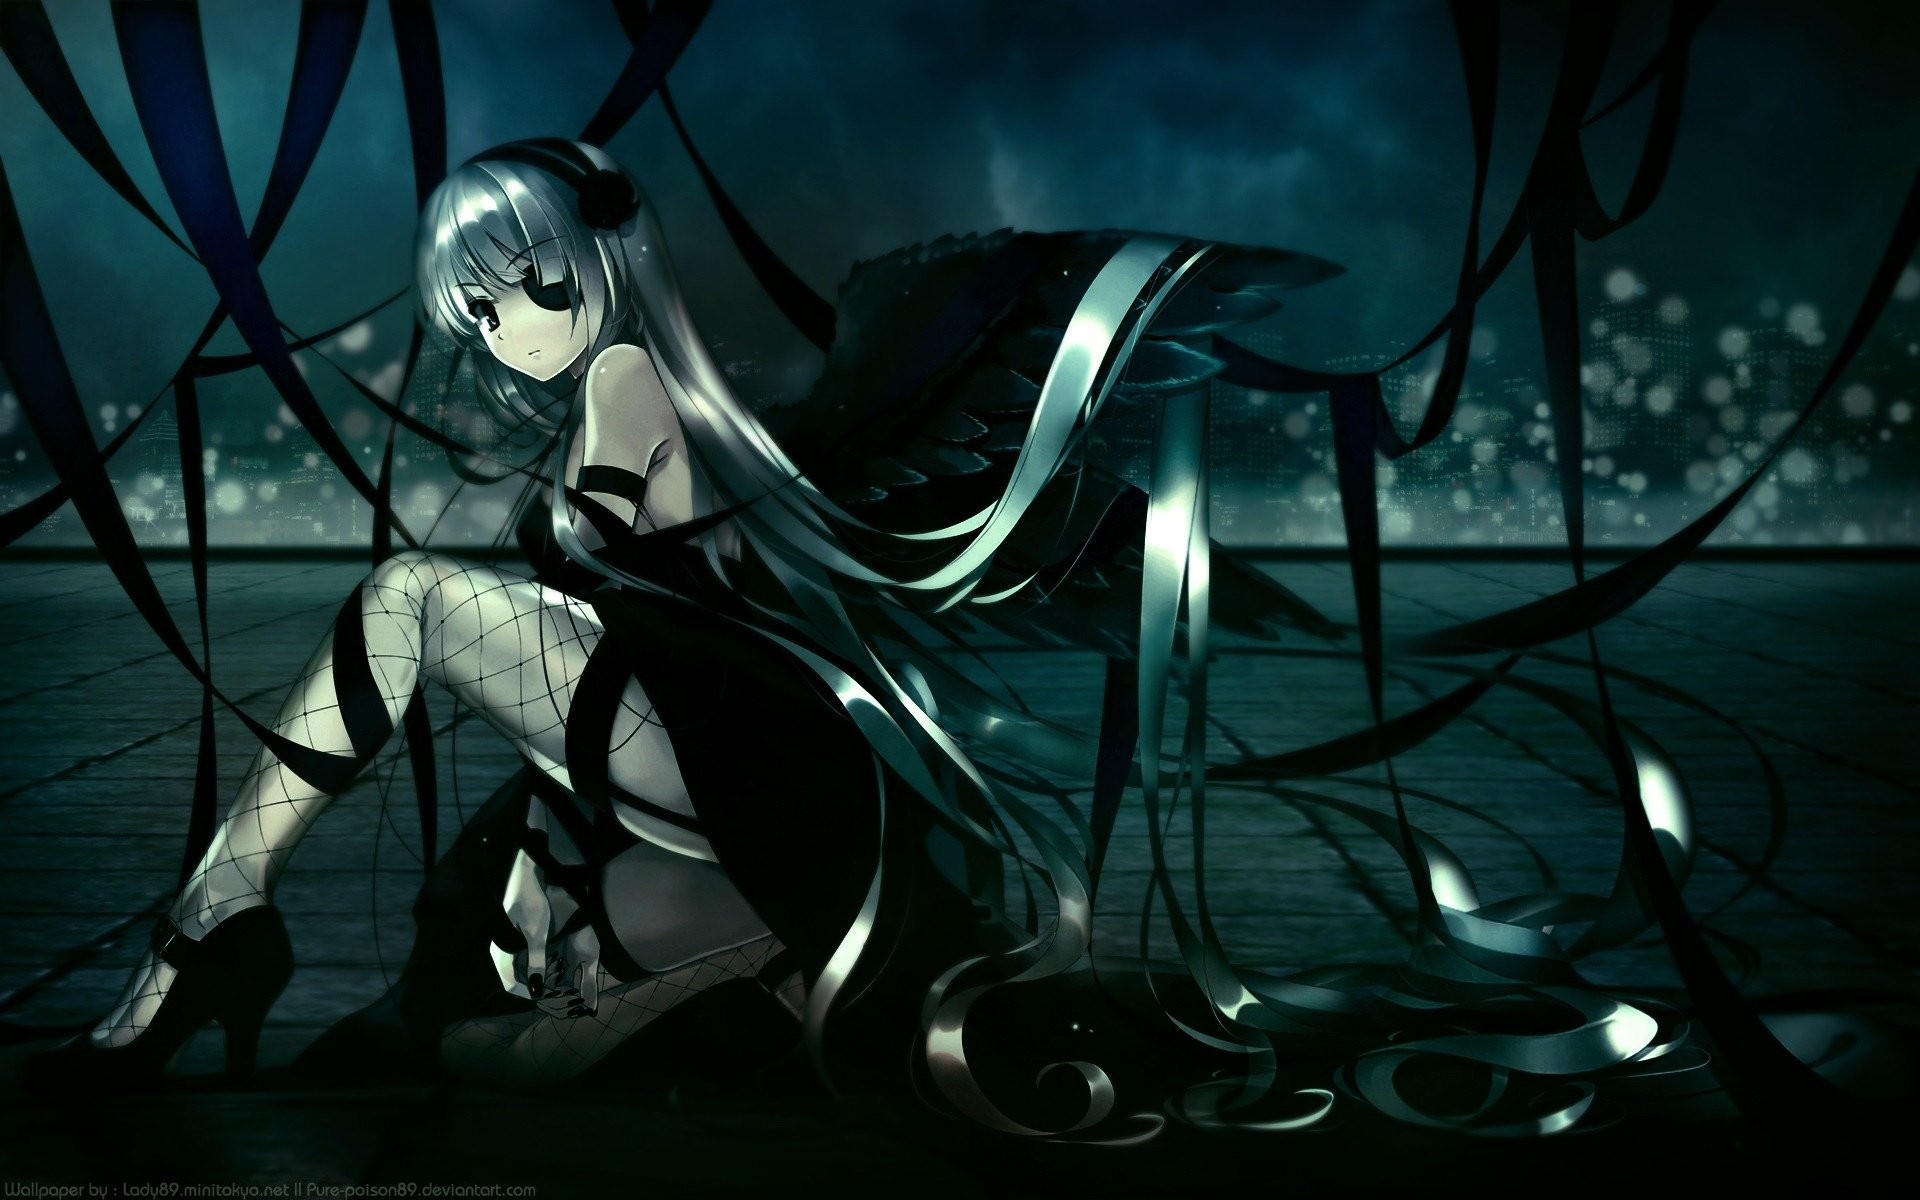 Gothic anime wallpaper 69 images - Dark anime background ...